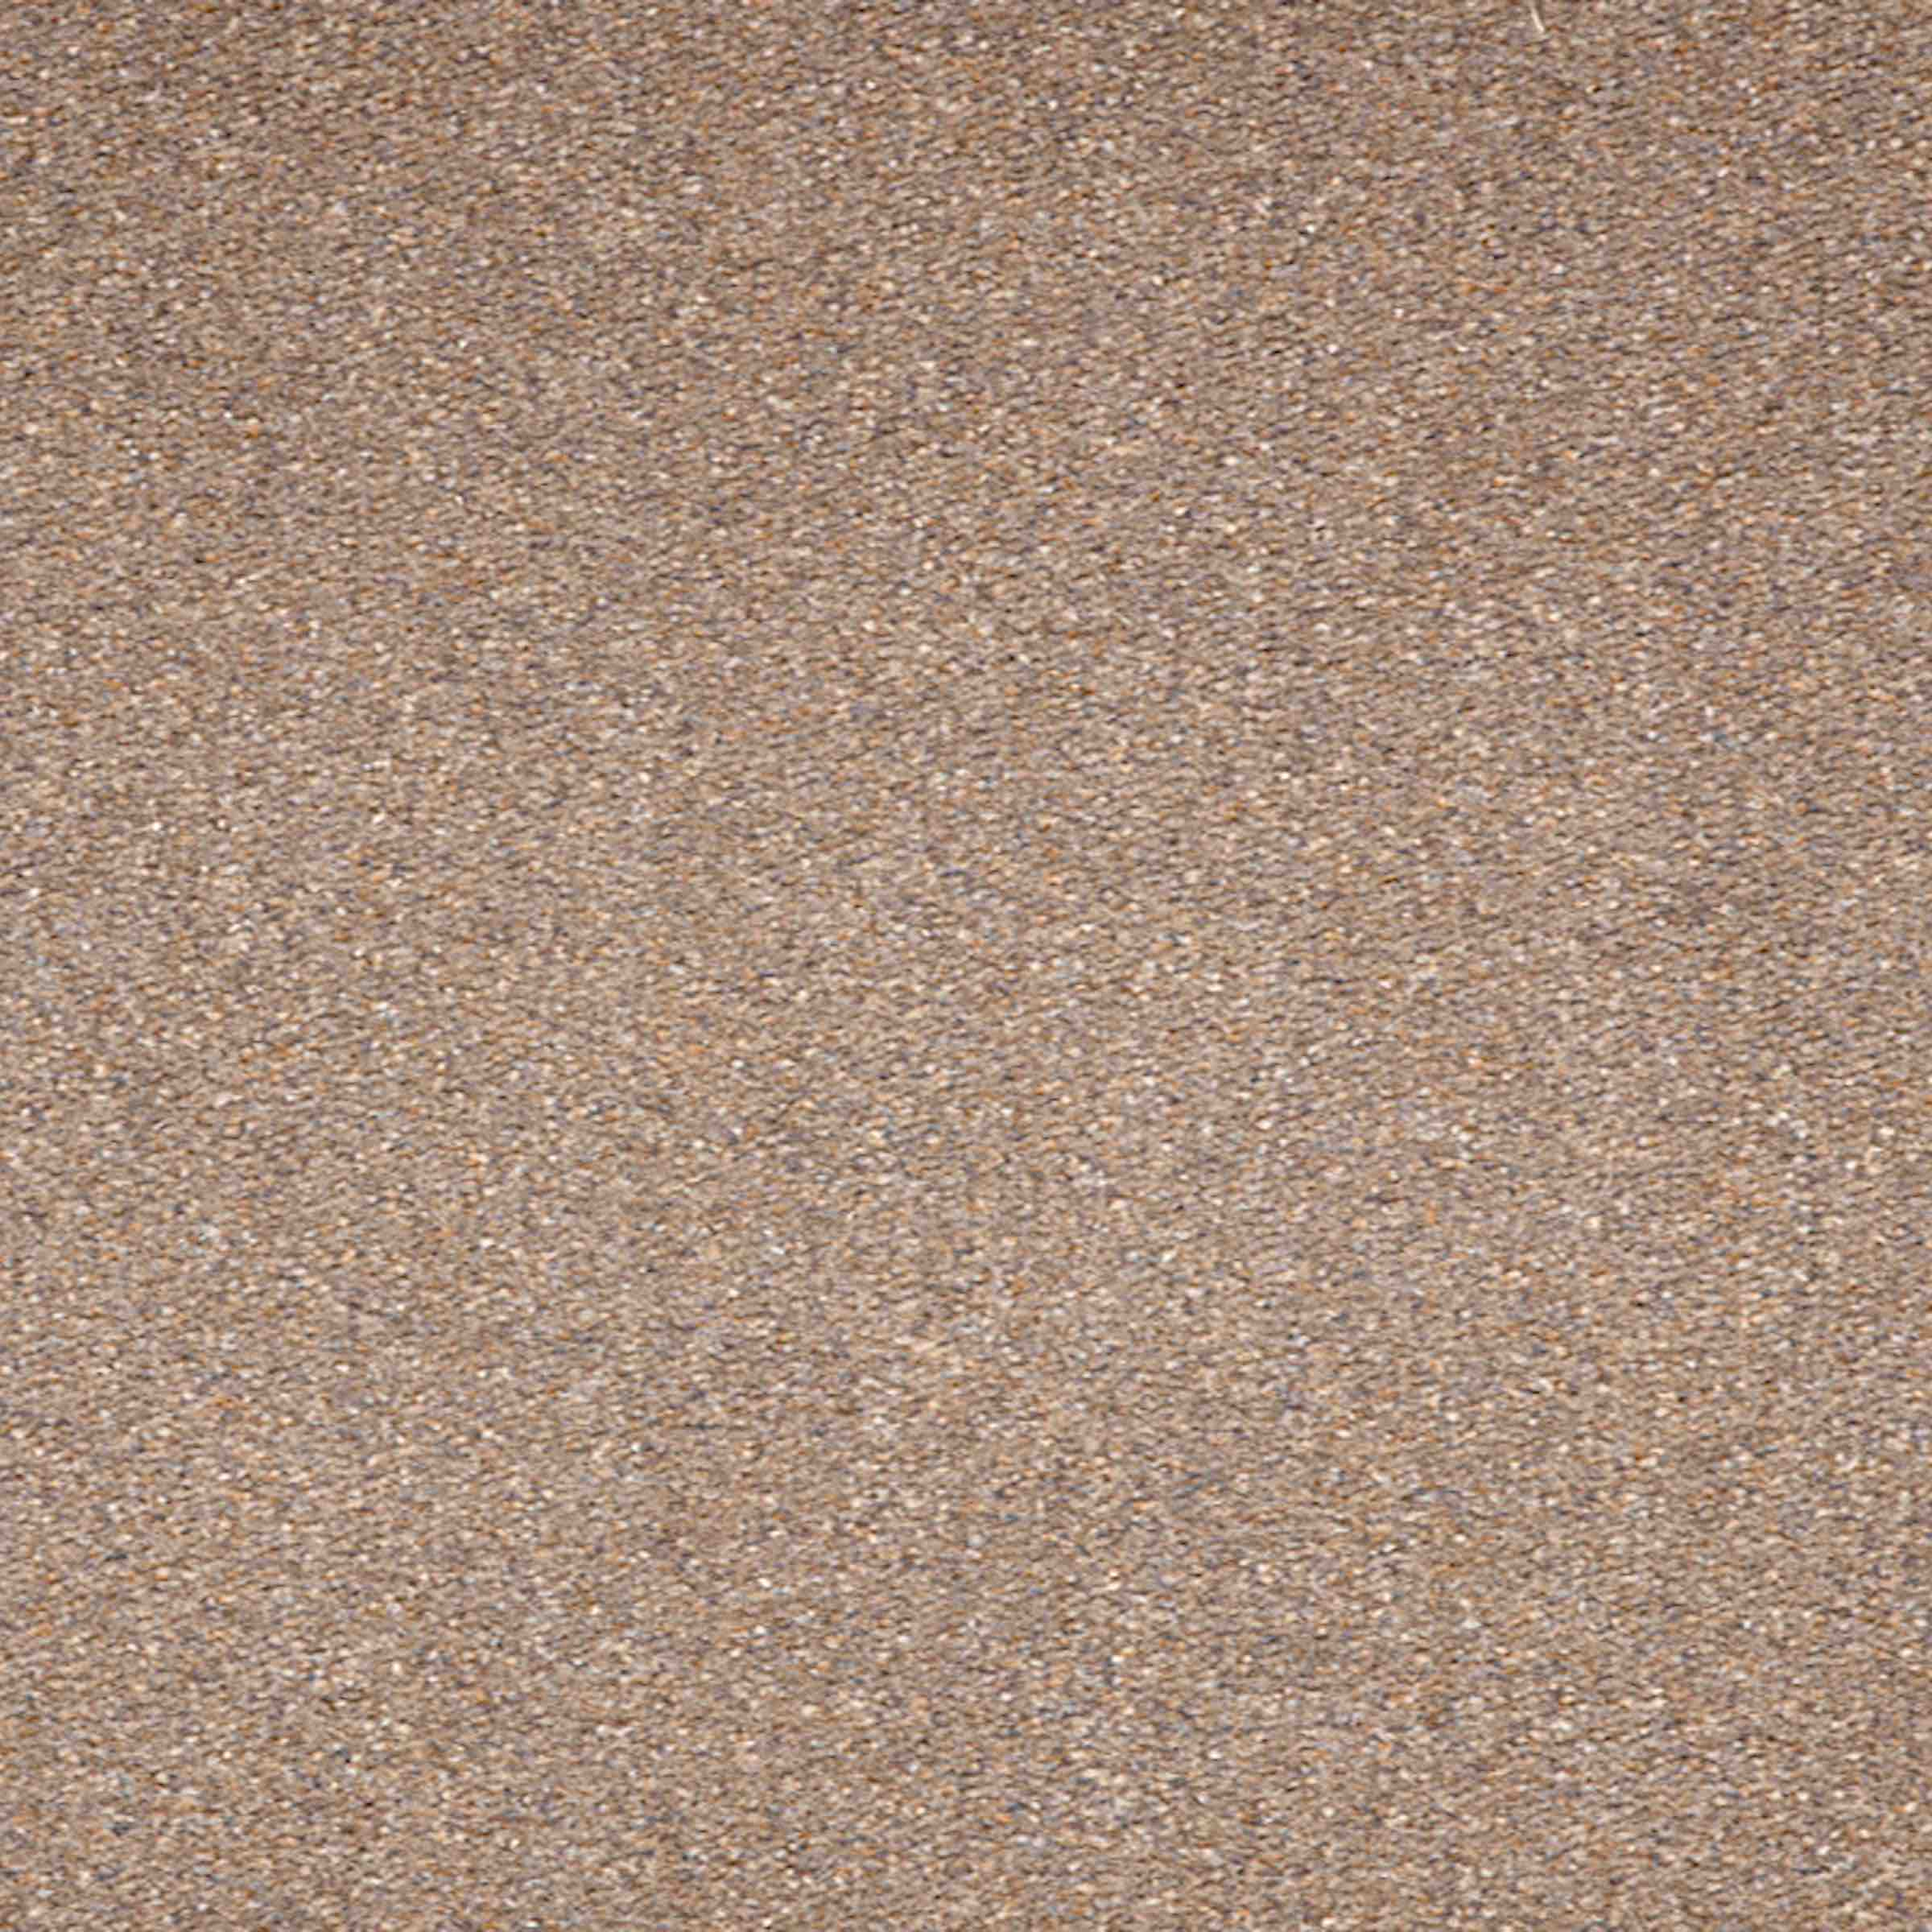 Workspace Cut Pile | Wheat, 1015C | Paragon Carpet Tiles | Commercial Carpet Tiles